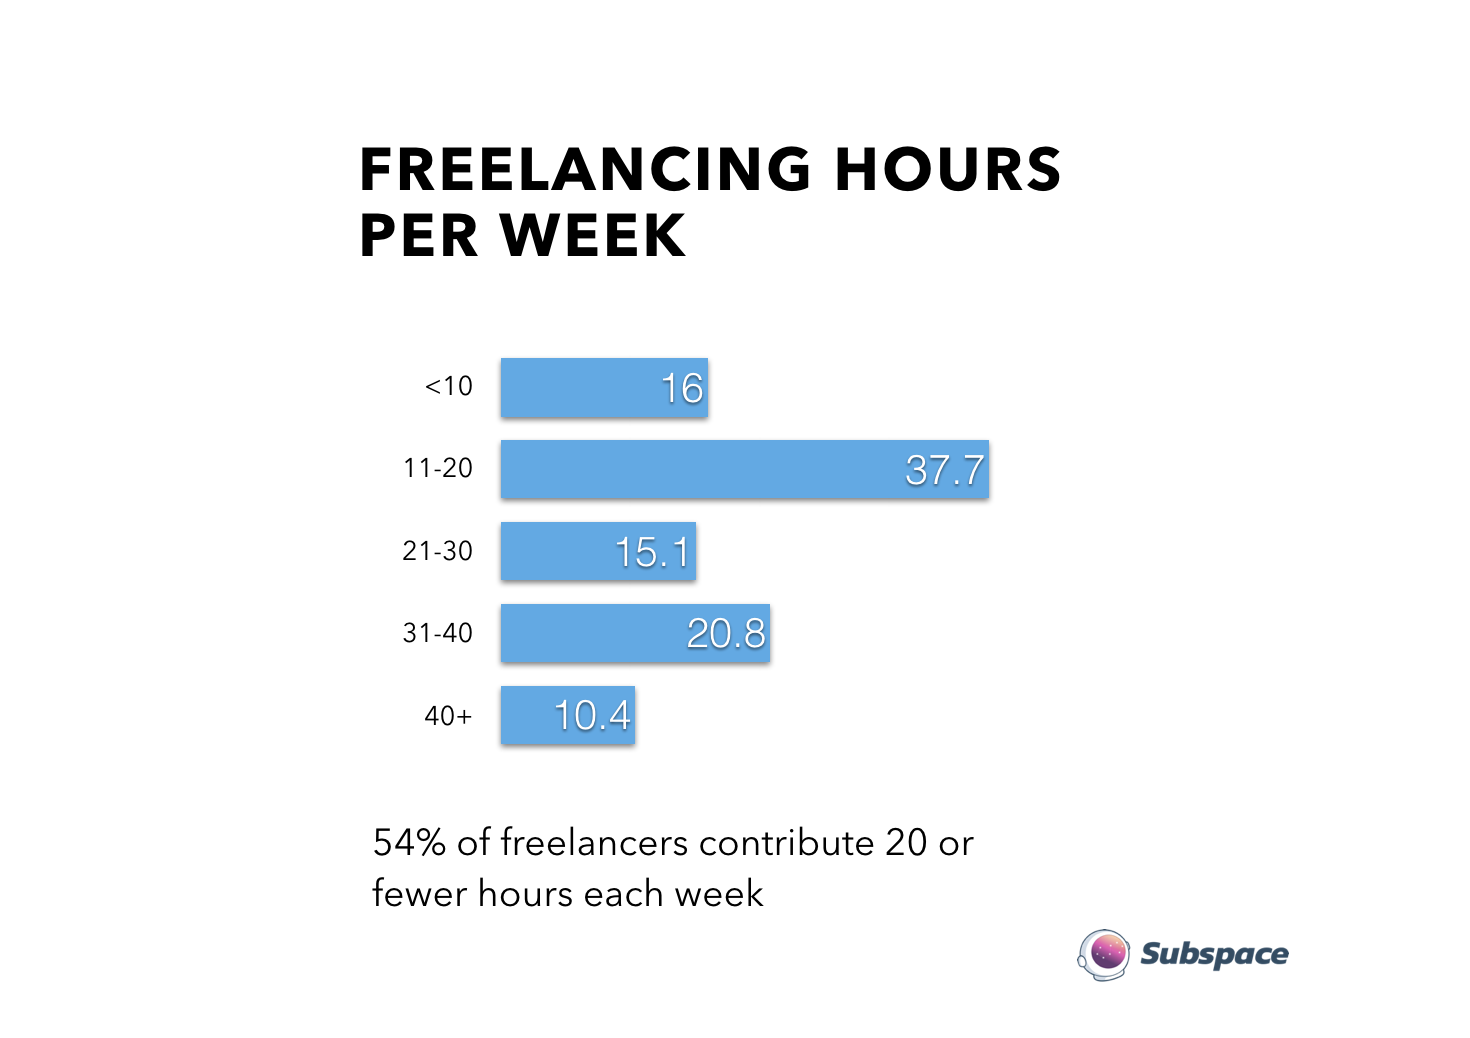 54% have < 20 hours of availability each month - The rest are ready to take on the equivalent of a part-time or full-time job. There's a tremendous amount of untapped supply in the freelance developer market.